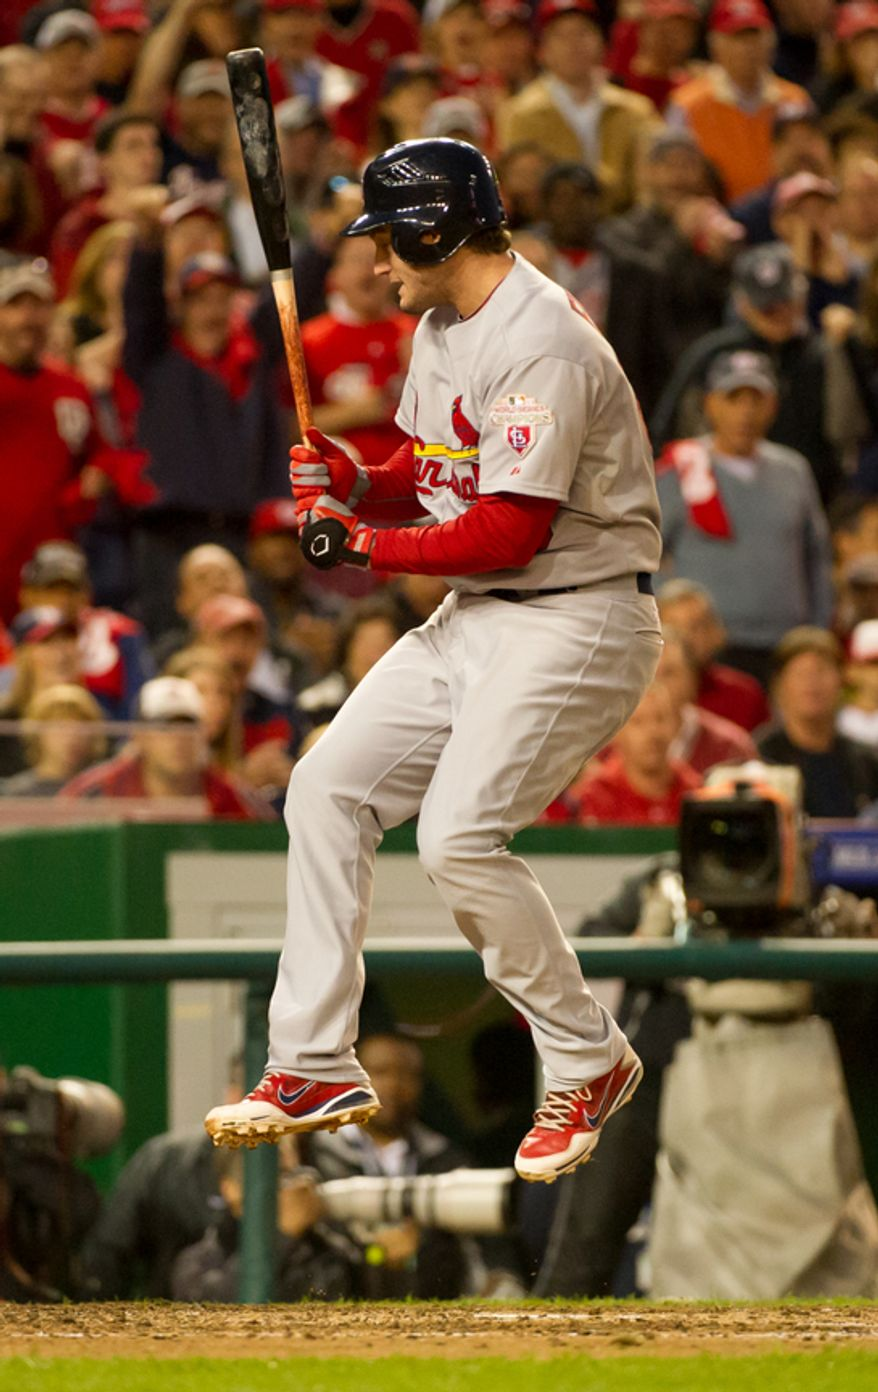 St. Louis Cardinals third baseman David Freese (23) reacts as he is struck out in the 9th inning as the Washington Nationals play the St. Louis Cardinals in game four of the National League Division Series at Nationals Park, Washington, D.C., Thursday, October 11, 2012. (Andrew Harnik/The Washington Times)